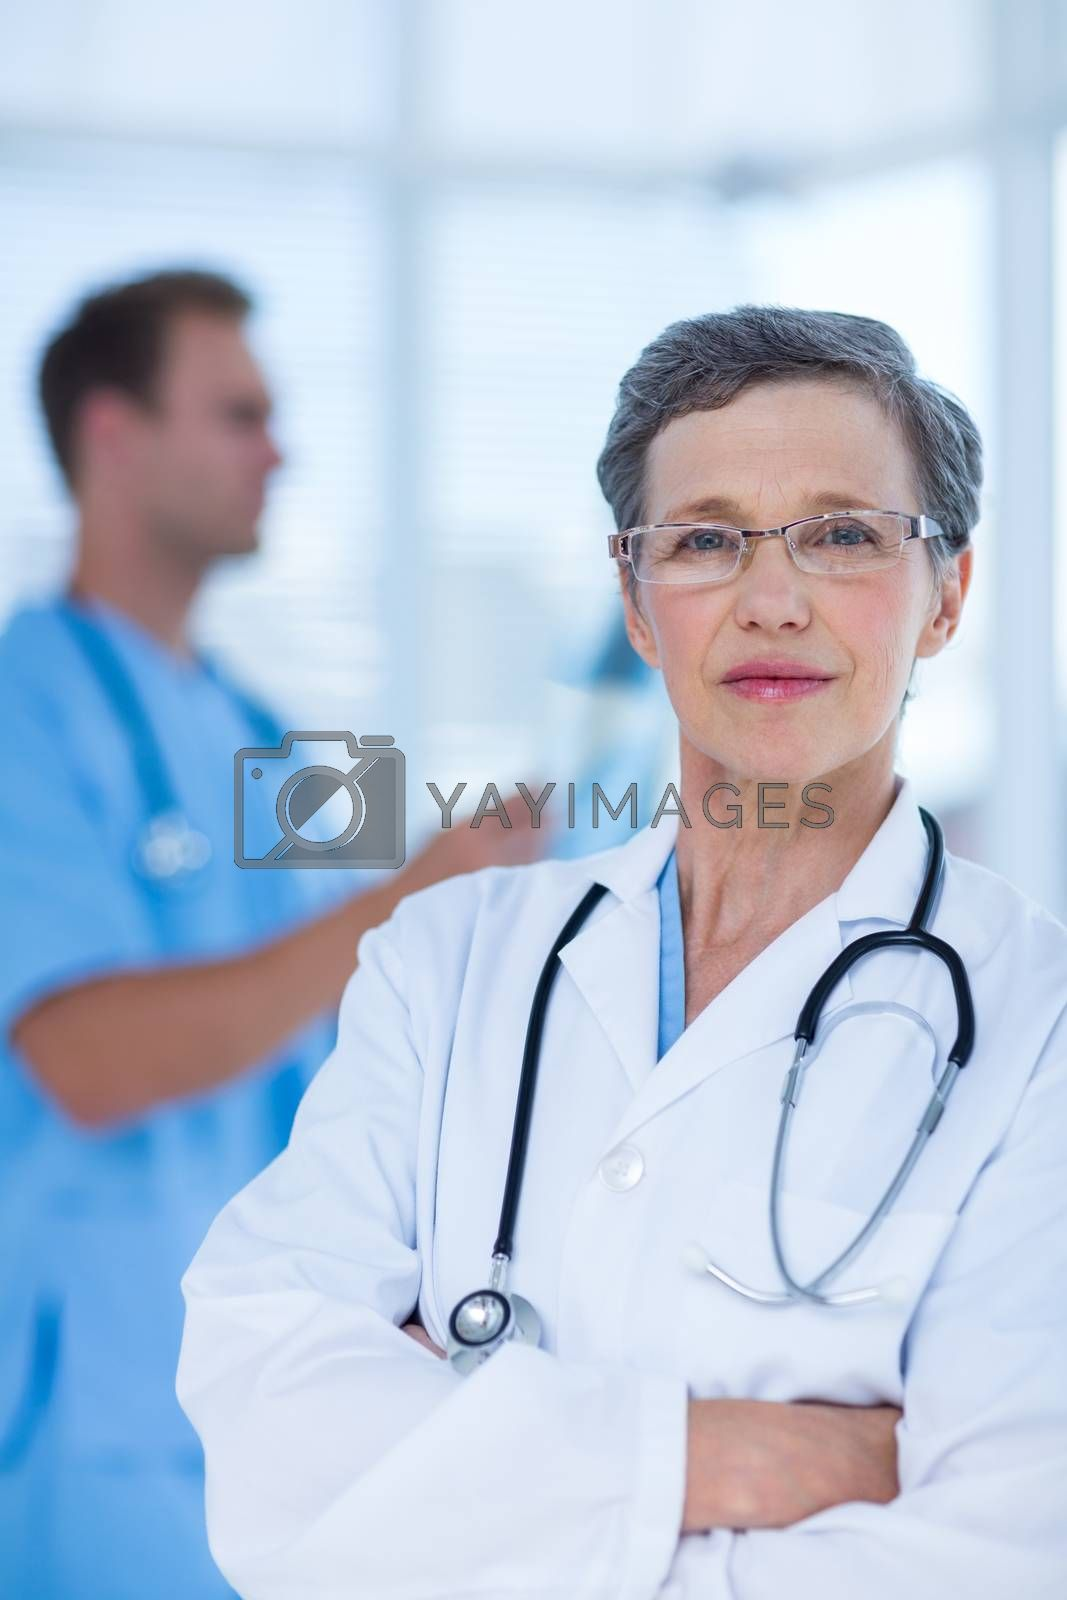 Royalty free image of Attentive doctor looking at the camera by Wavebreakmedia